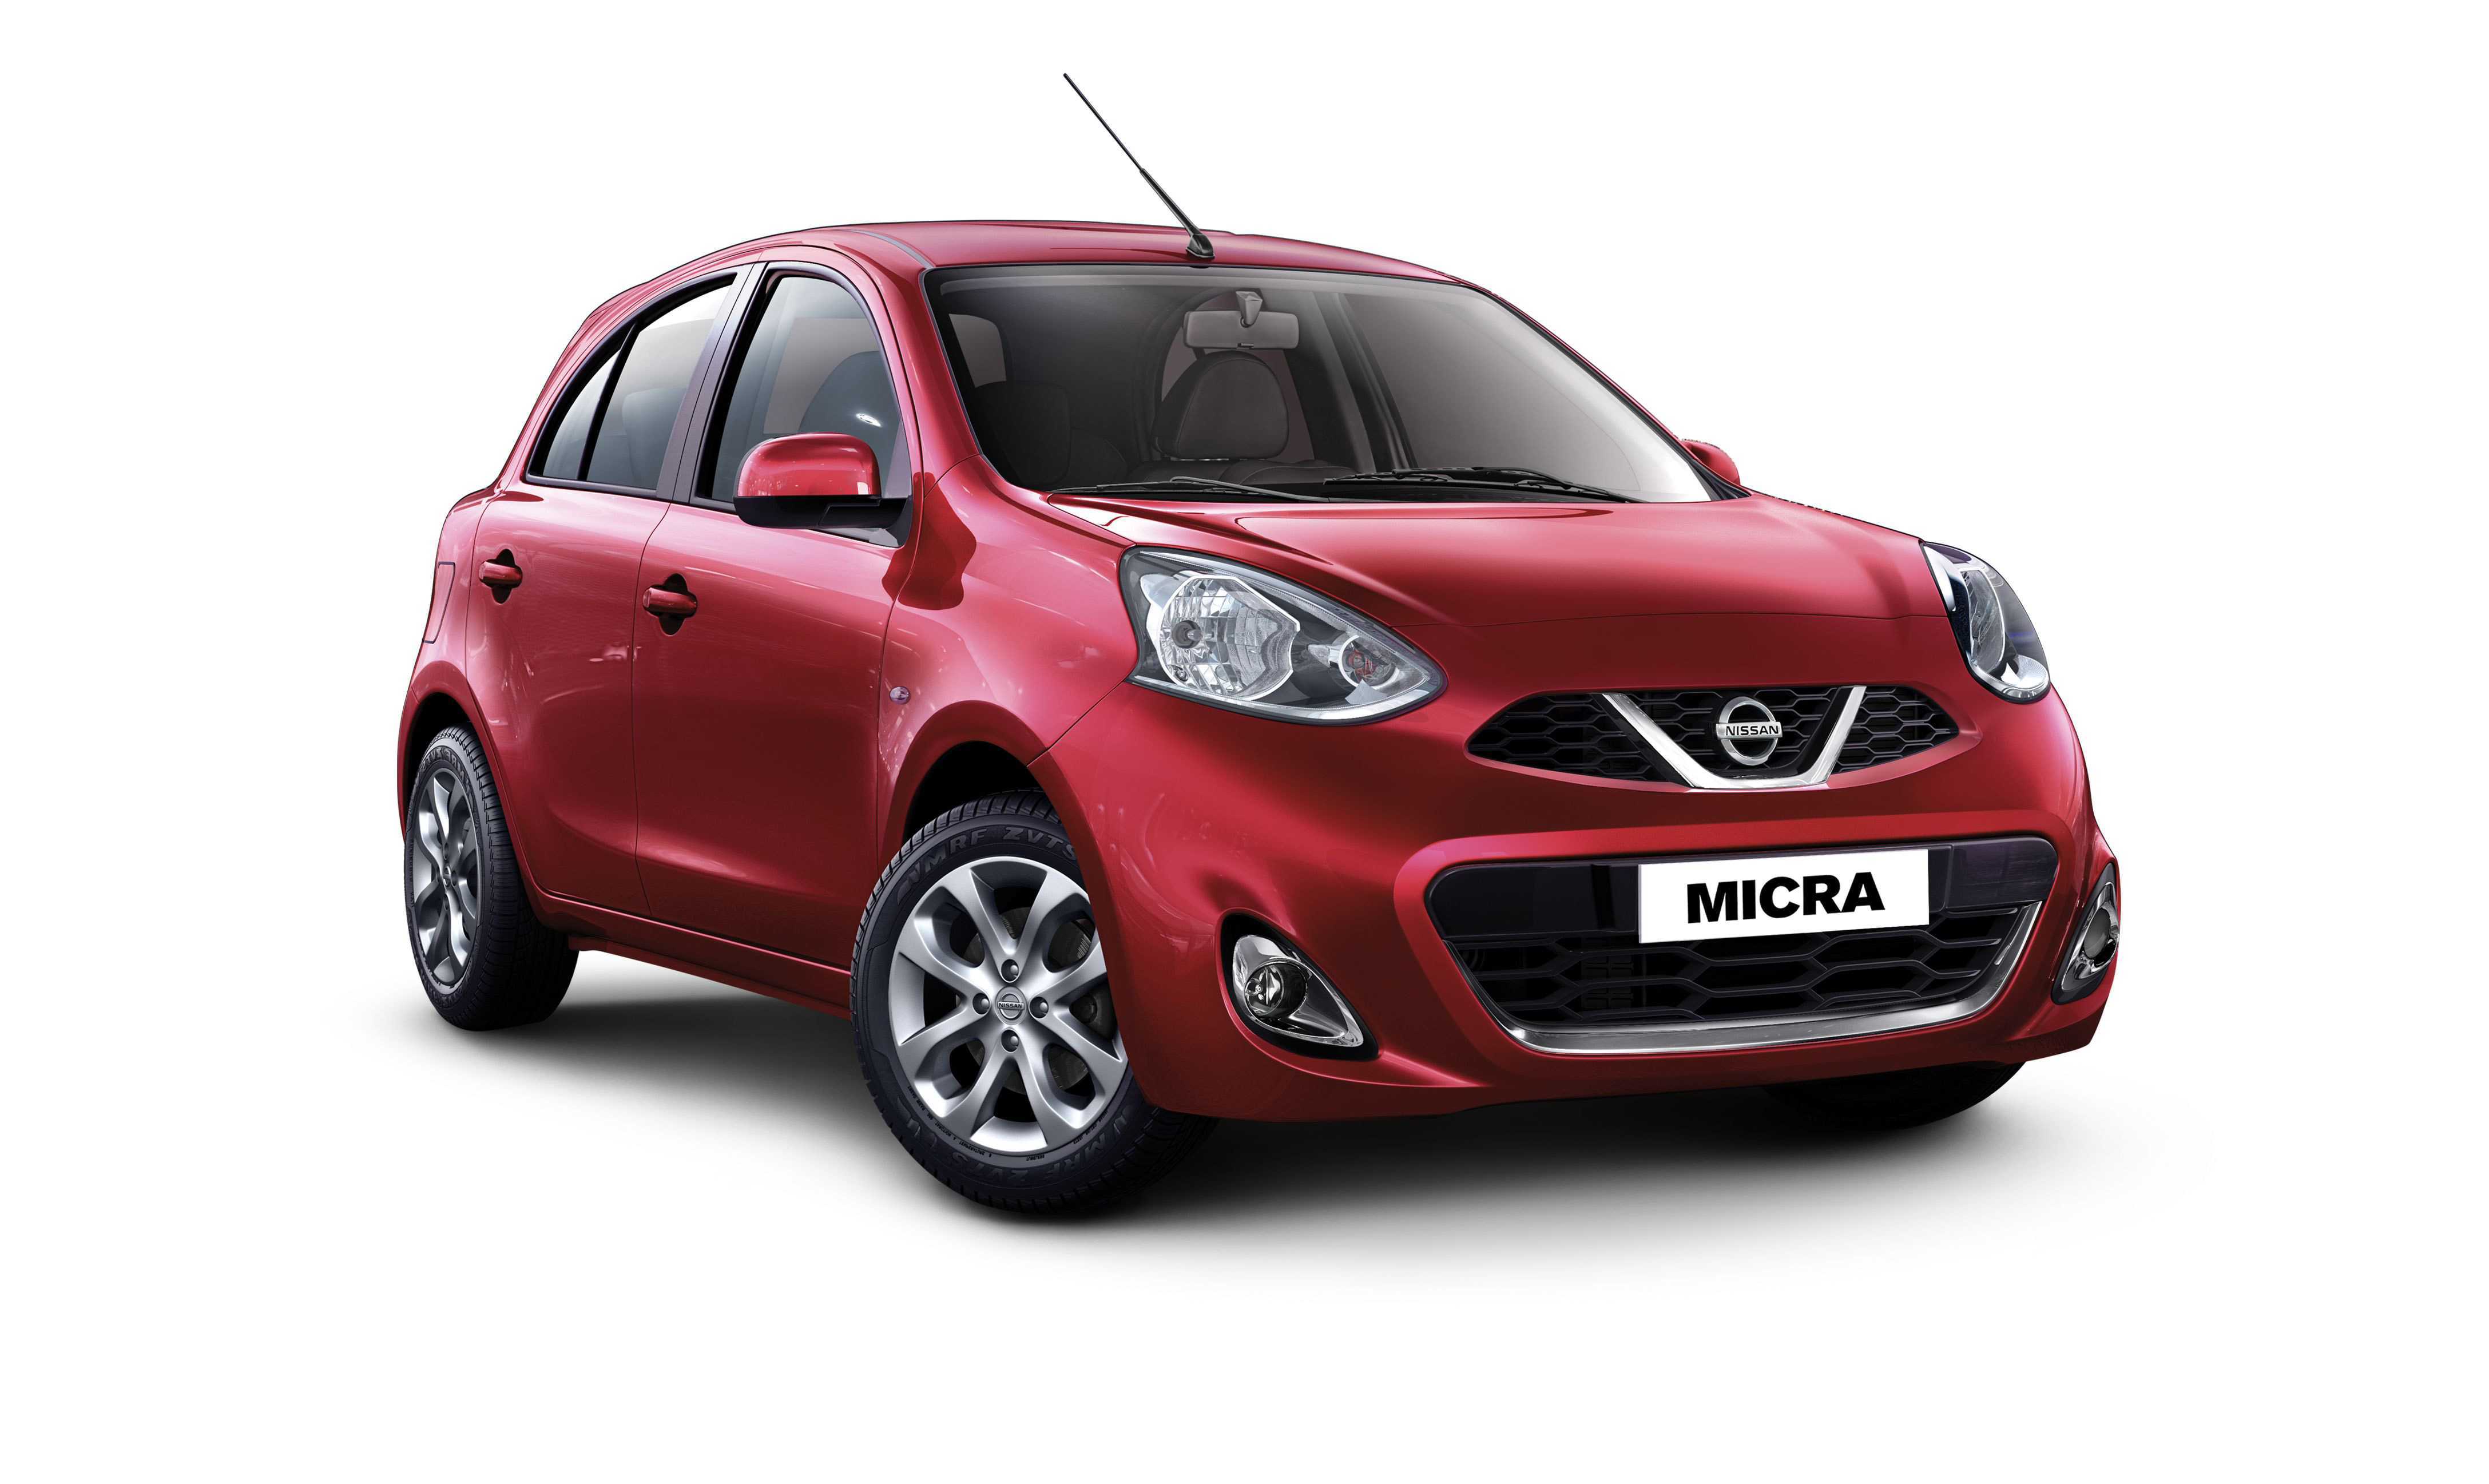 nissan drops micra xl cvt prices by over rs 50 000. Black Bedroom Furniture Sets. Home Design Ideas